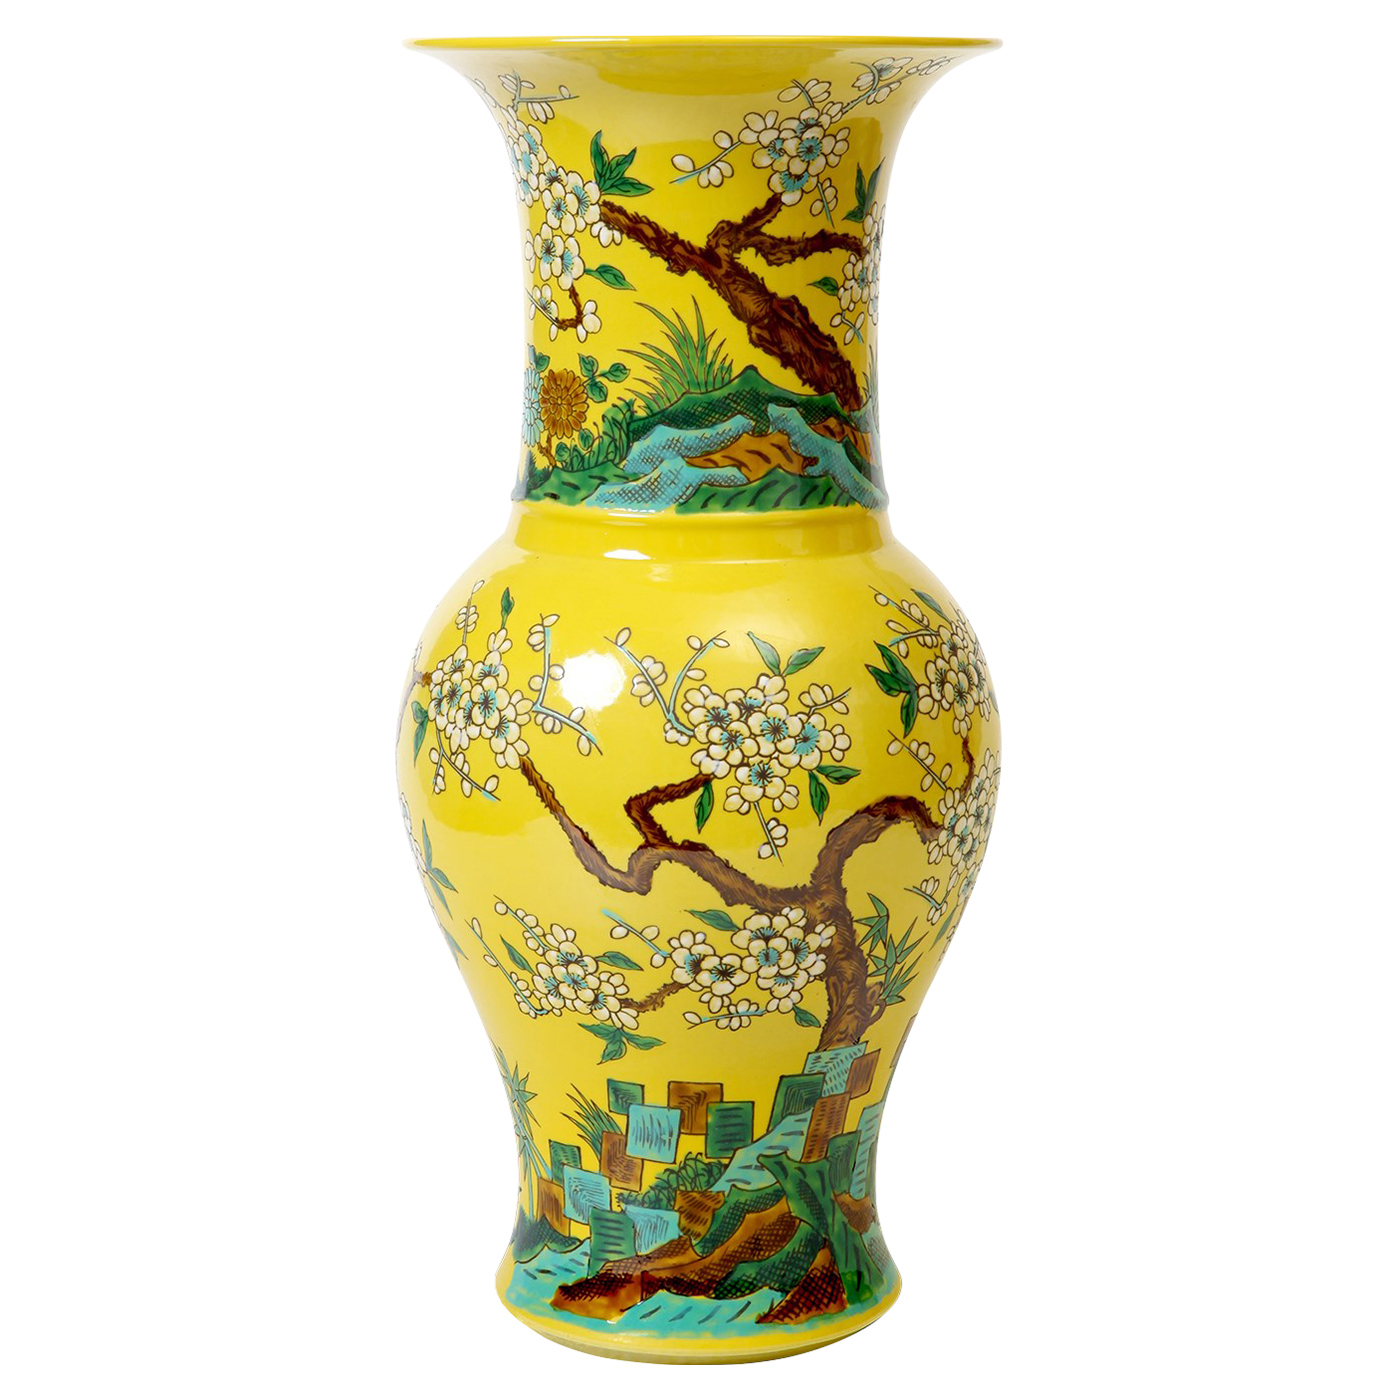 Oka Global Yellow Cherry Blossom Tall Wide Mouth Porcelain Vase